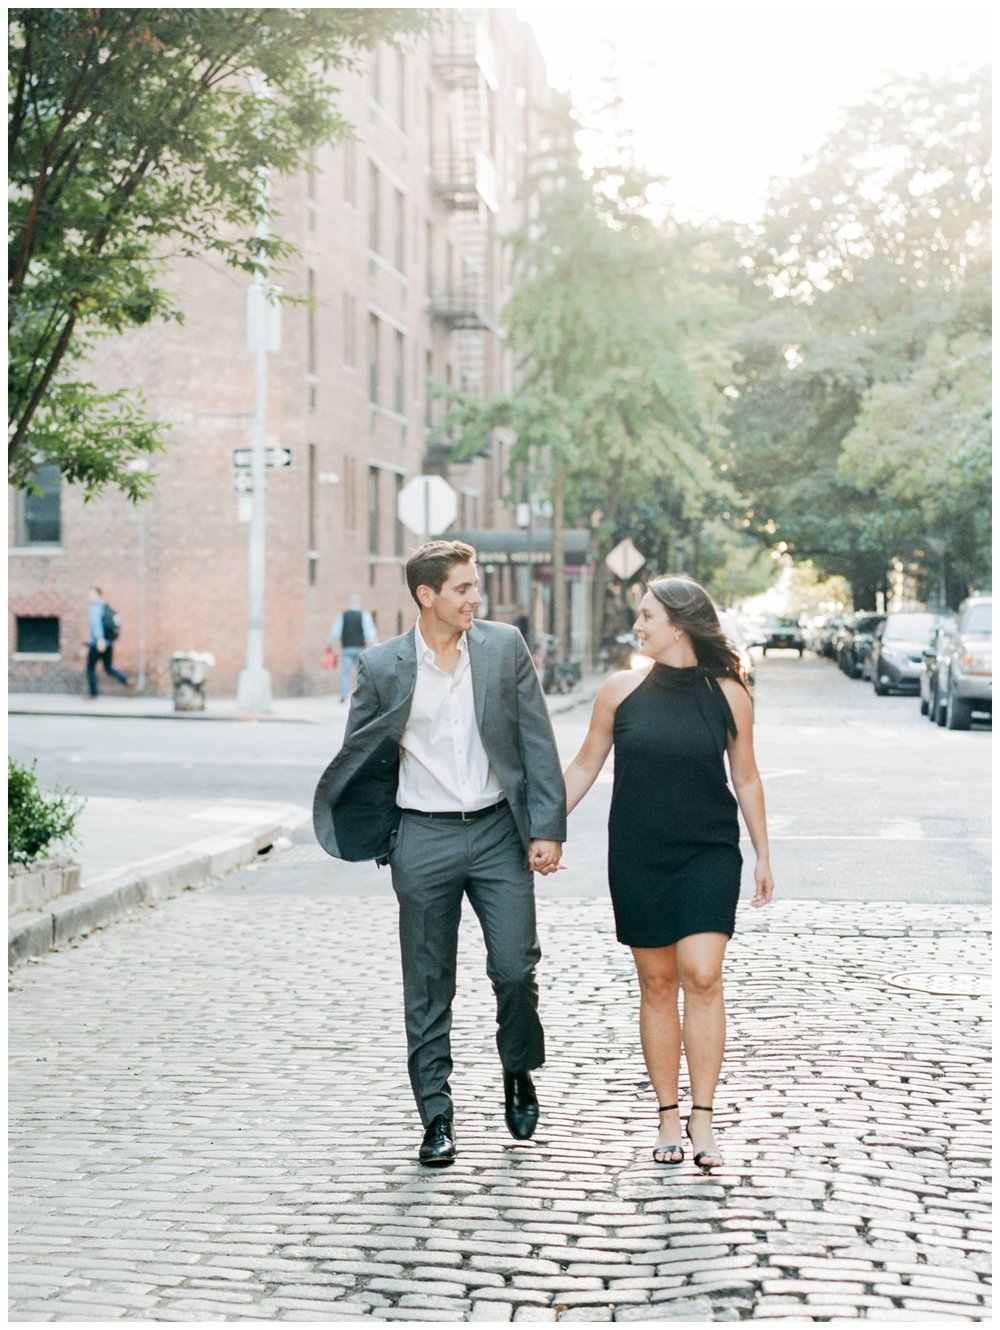 Fall engagement session in New York City by fine art wedding photographer Lissa Ryan Photography